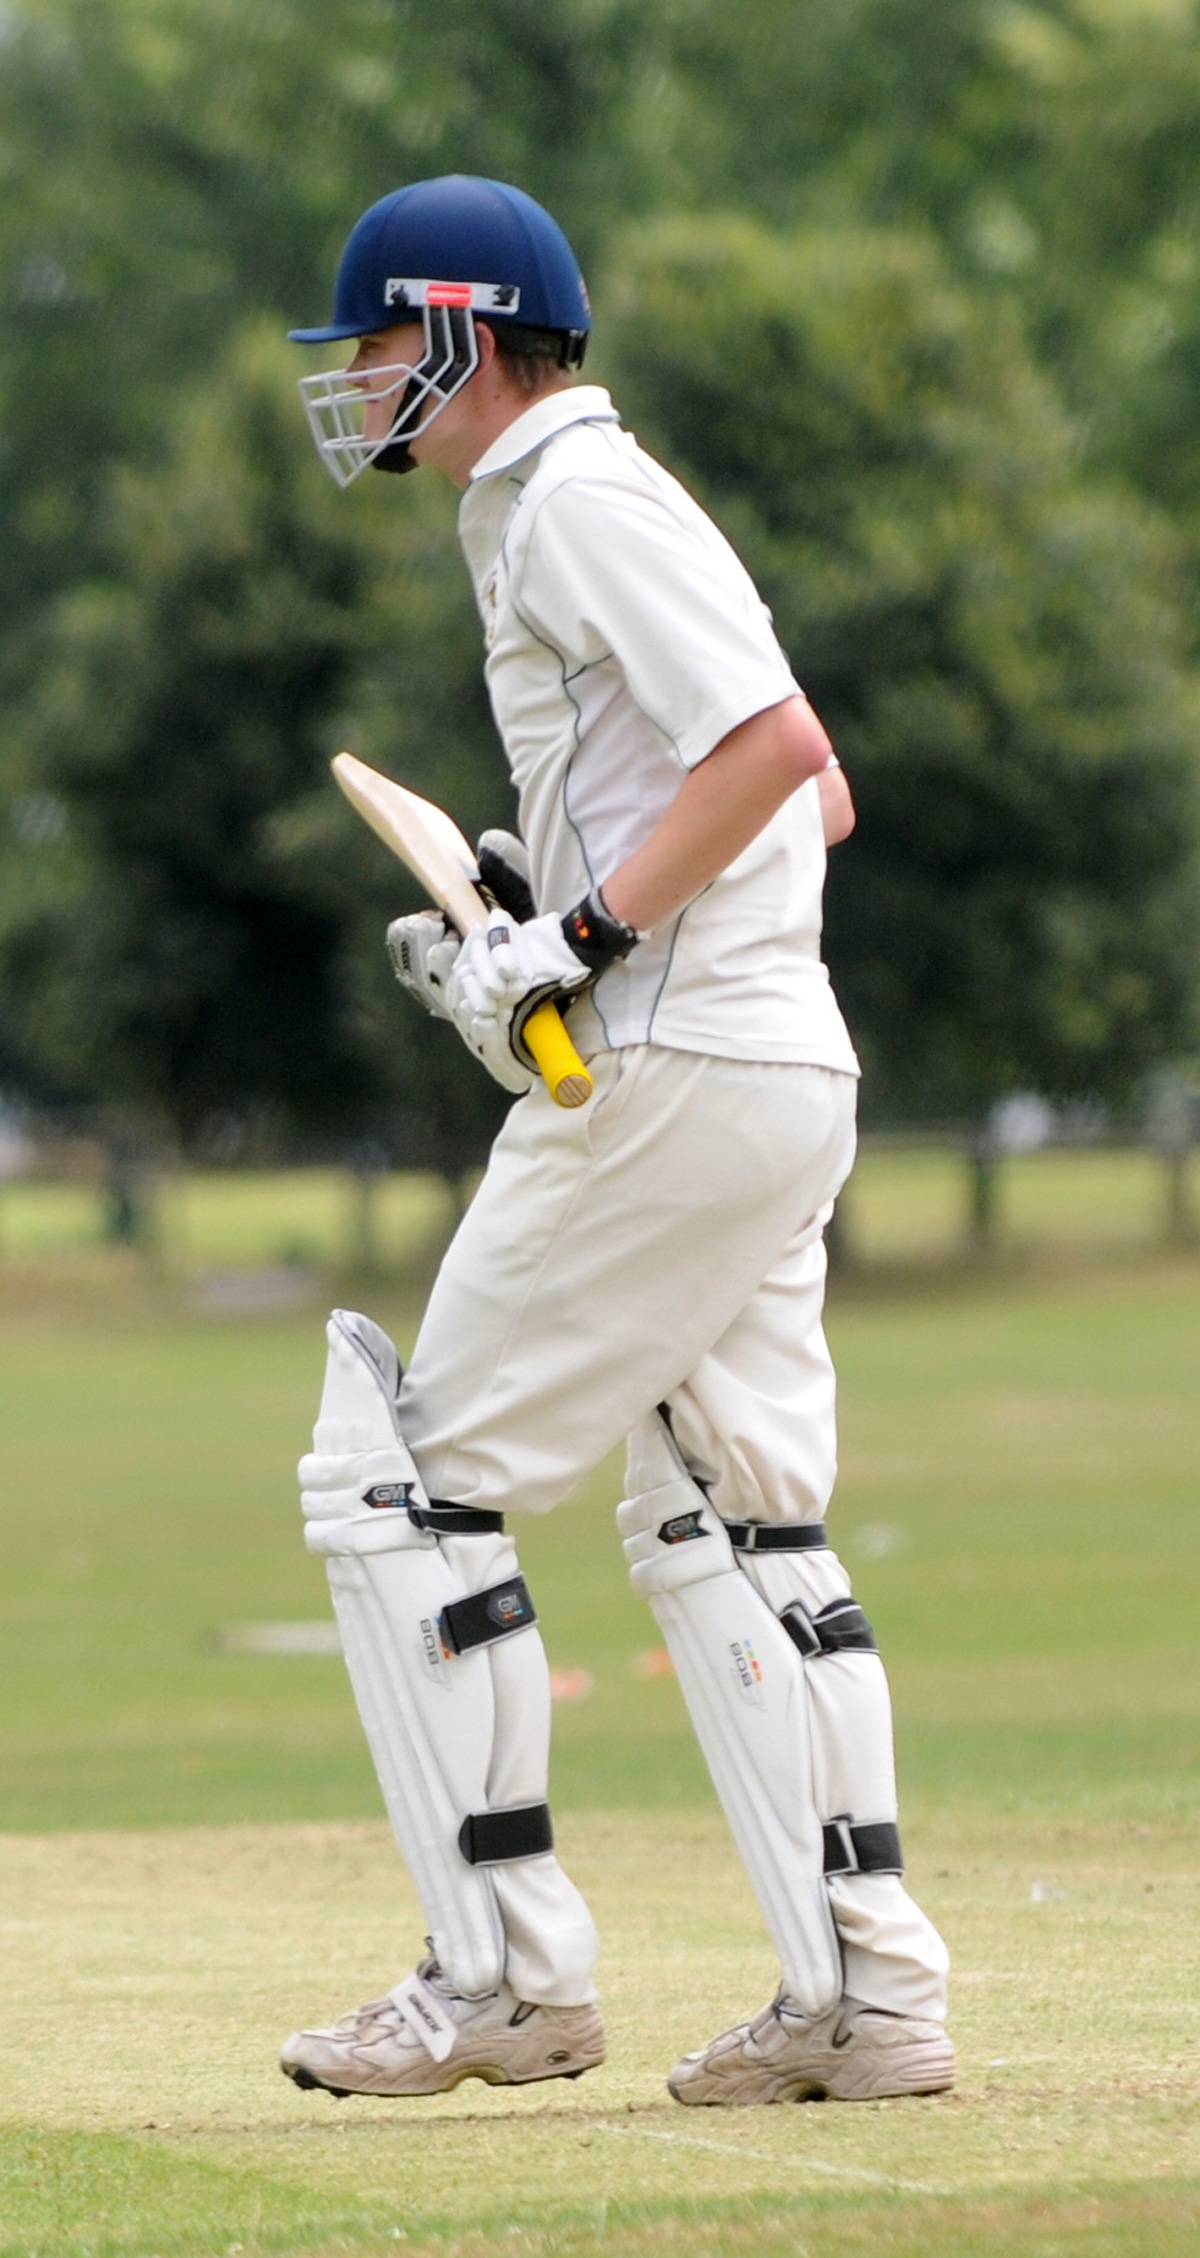 Pete Kelly, whose top-score 37 for Ovington proved enough to halt North Cave's victory push in the HPH Cup opening round